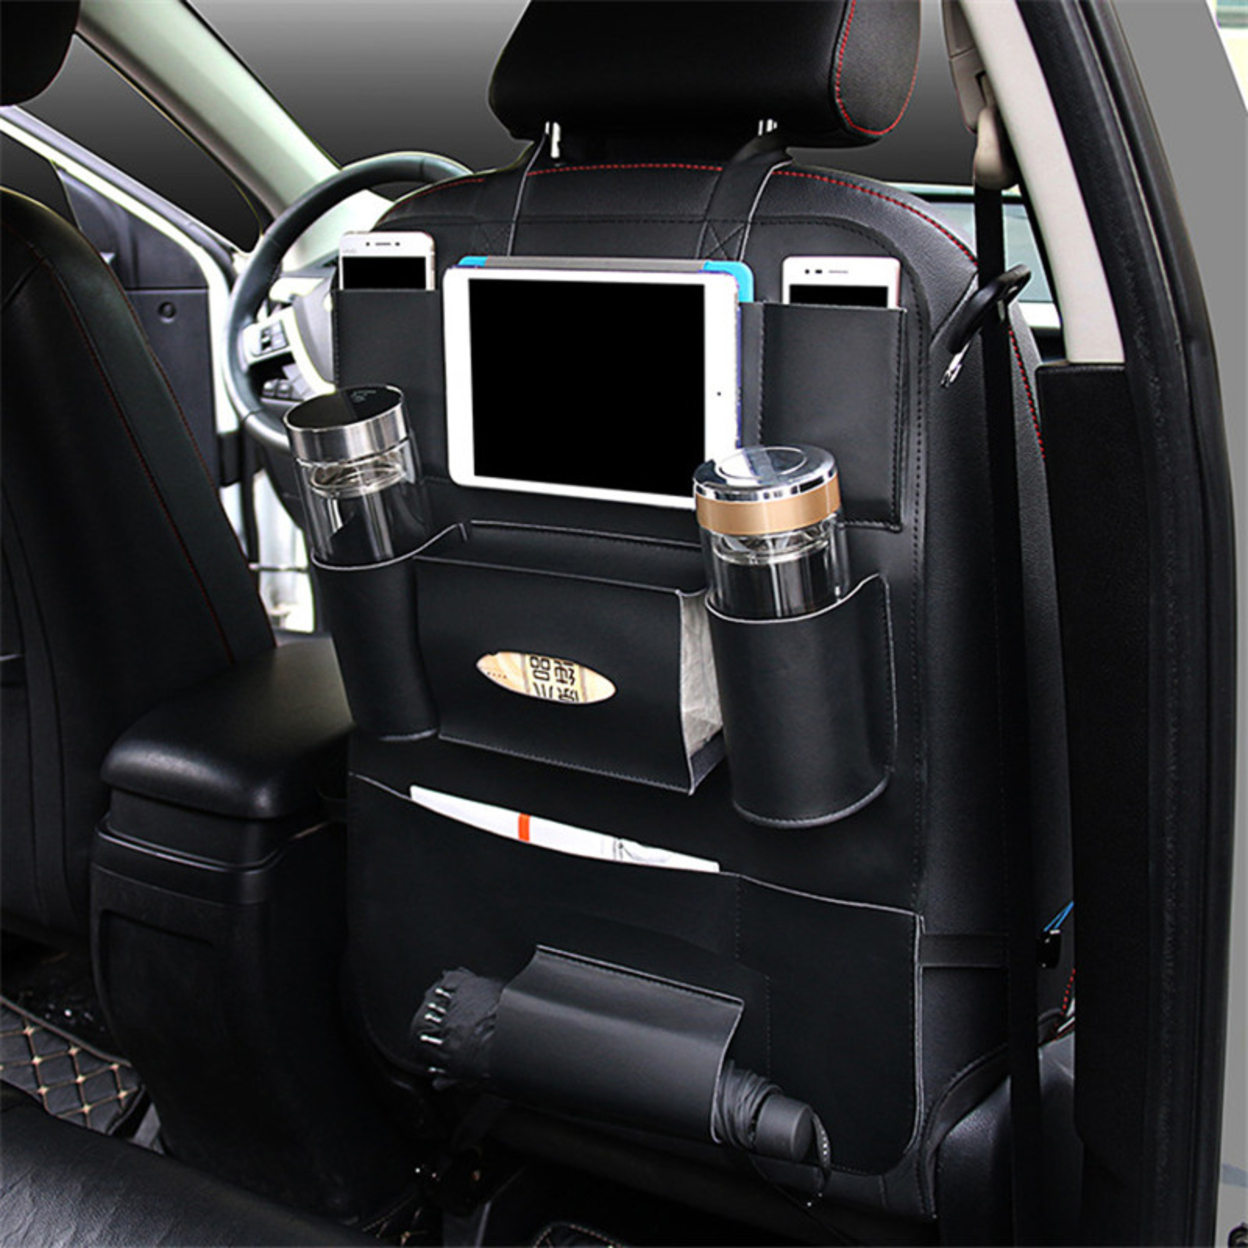 Multi- functional PU Leather Hanging Bag Car Seat Back Organizer-Black Hot Sale 59c4be39e2246139876c6b67